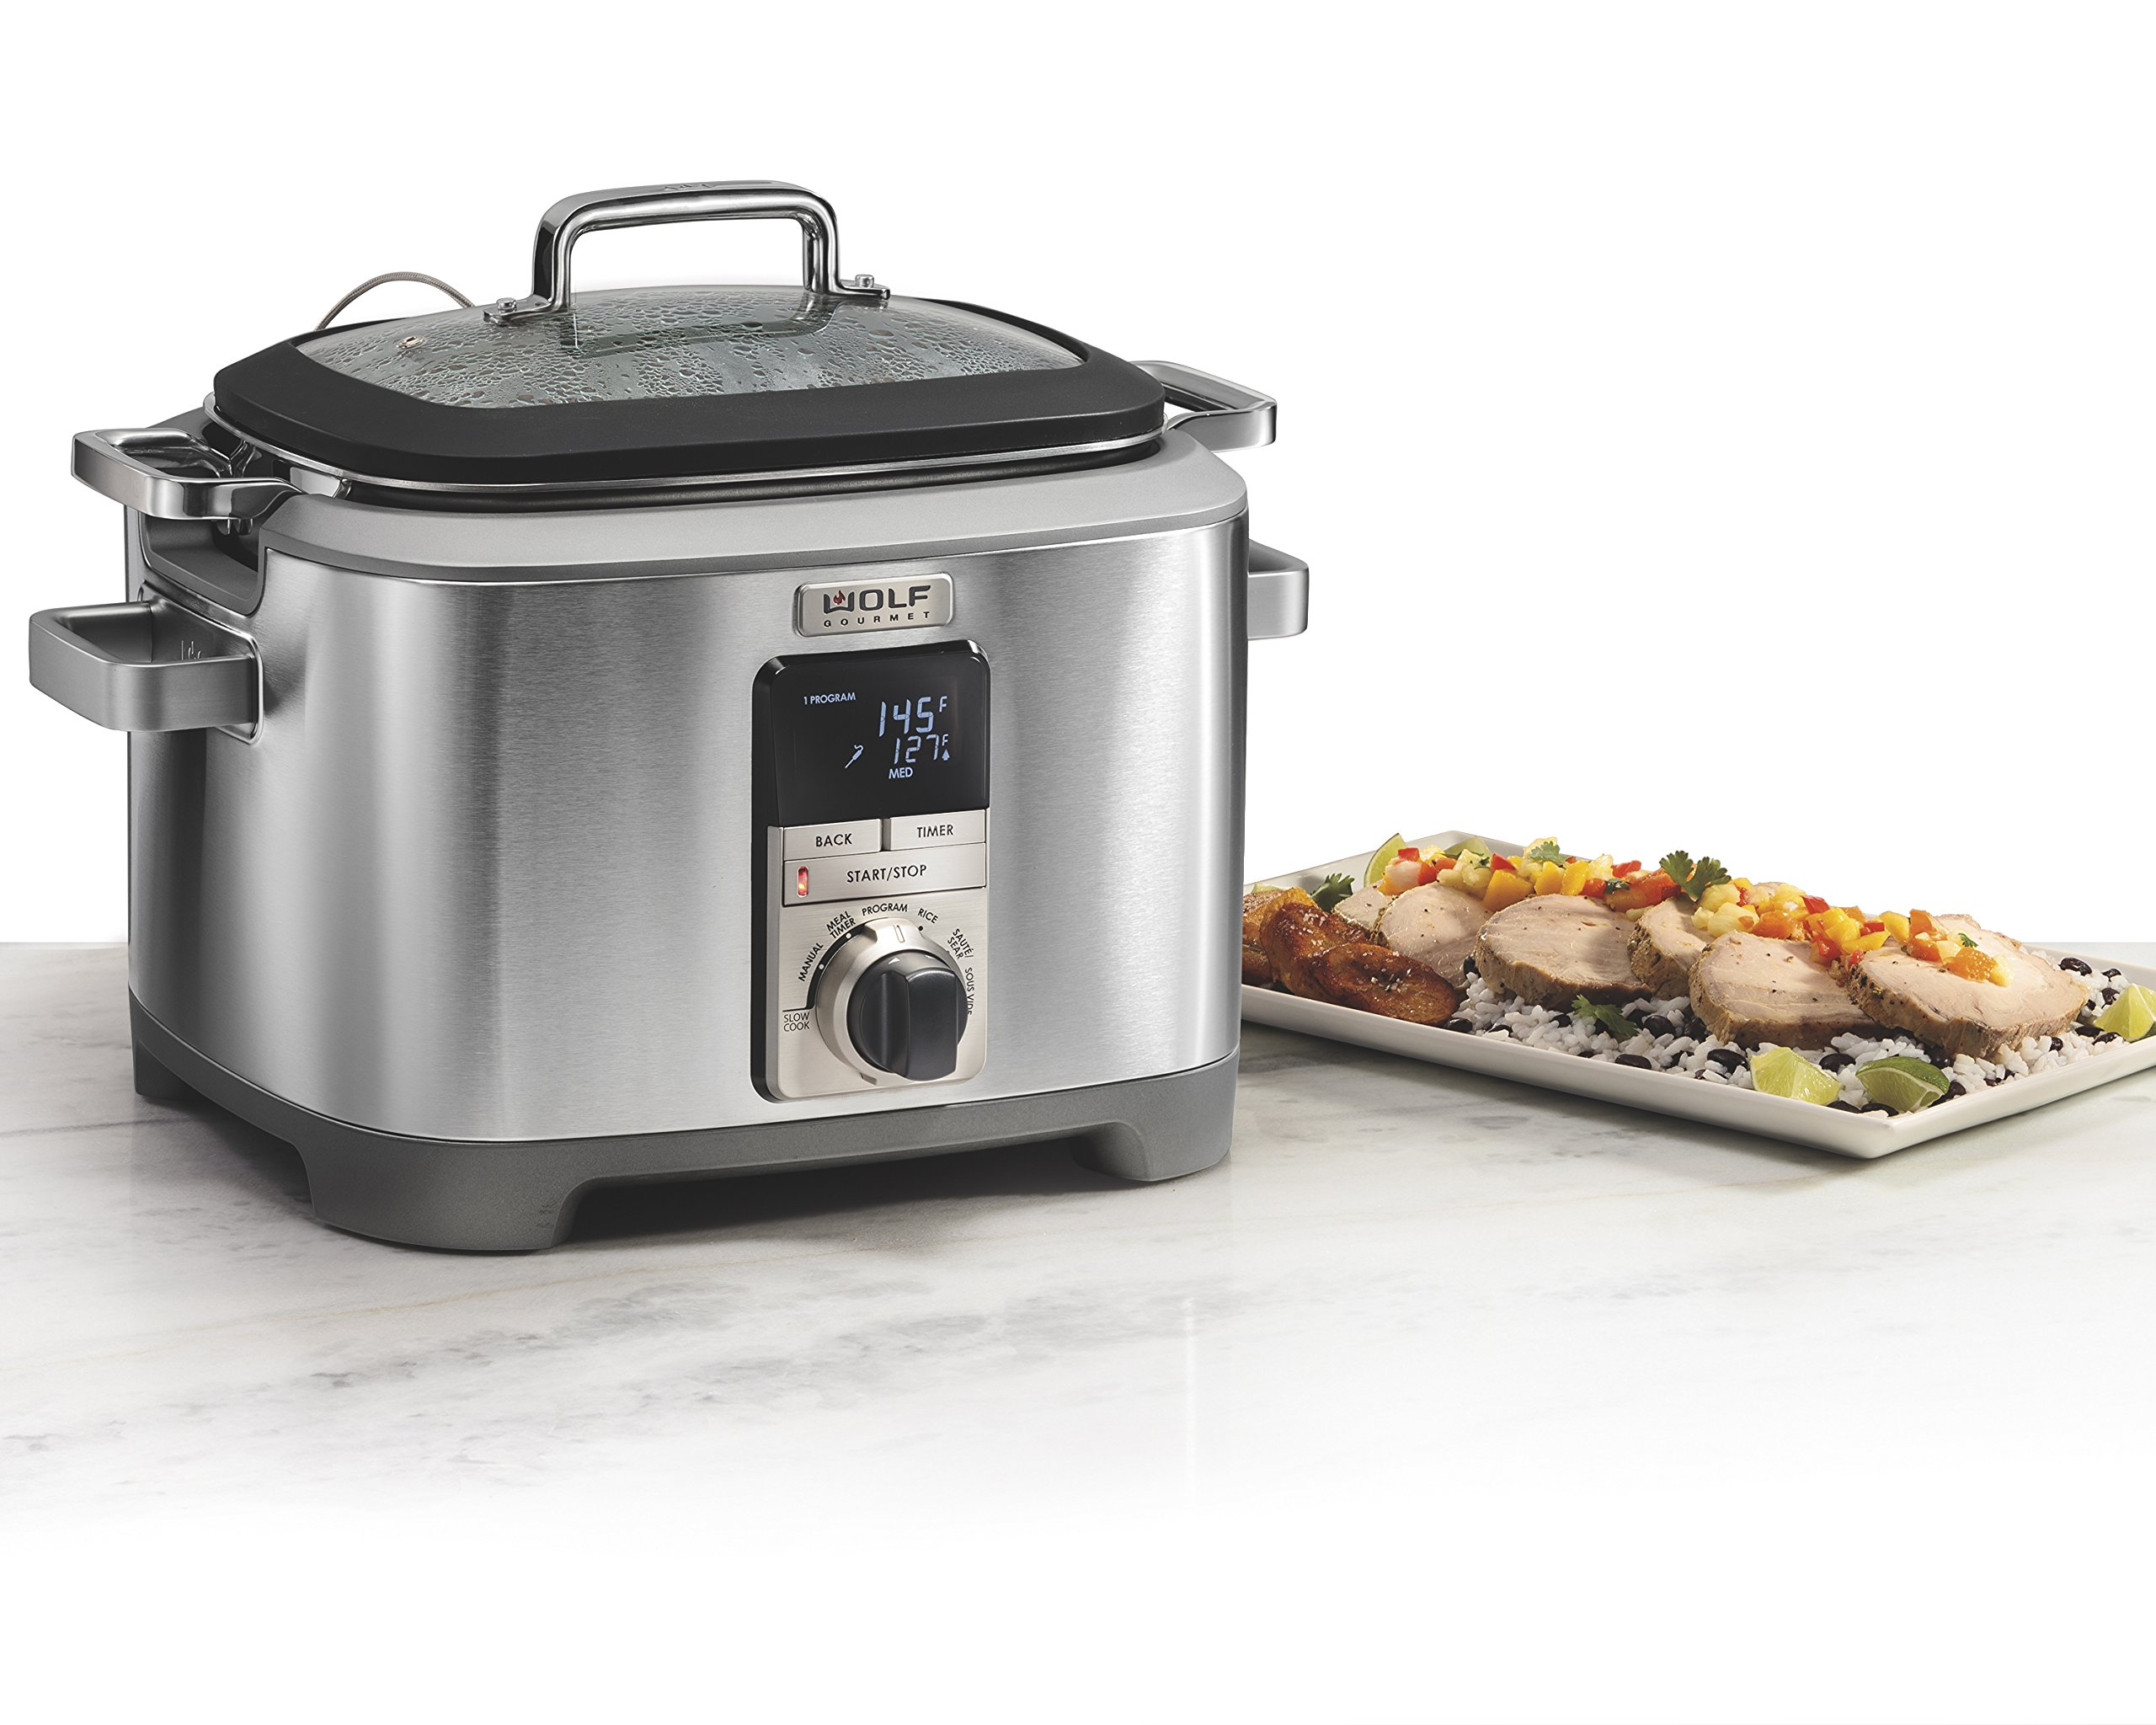 Wolf Gourmet WGSC110S Programmable Multi Function Cooker with Temperature Probe - Slow Cooker, Rice Cooker, Sauté, Sear, Sous Vide, Stainless Steel (Black)